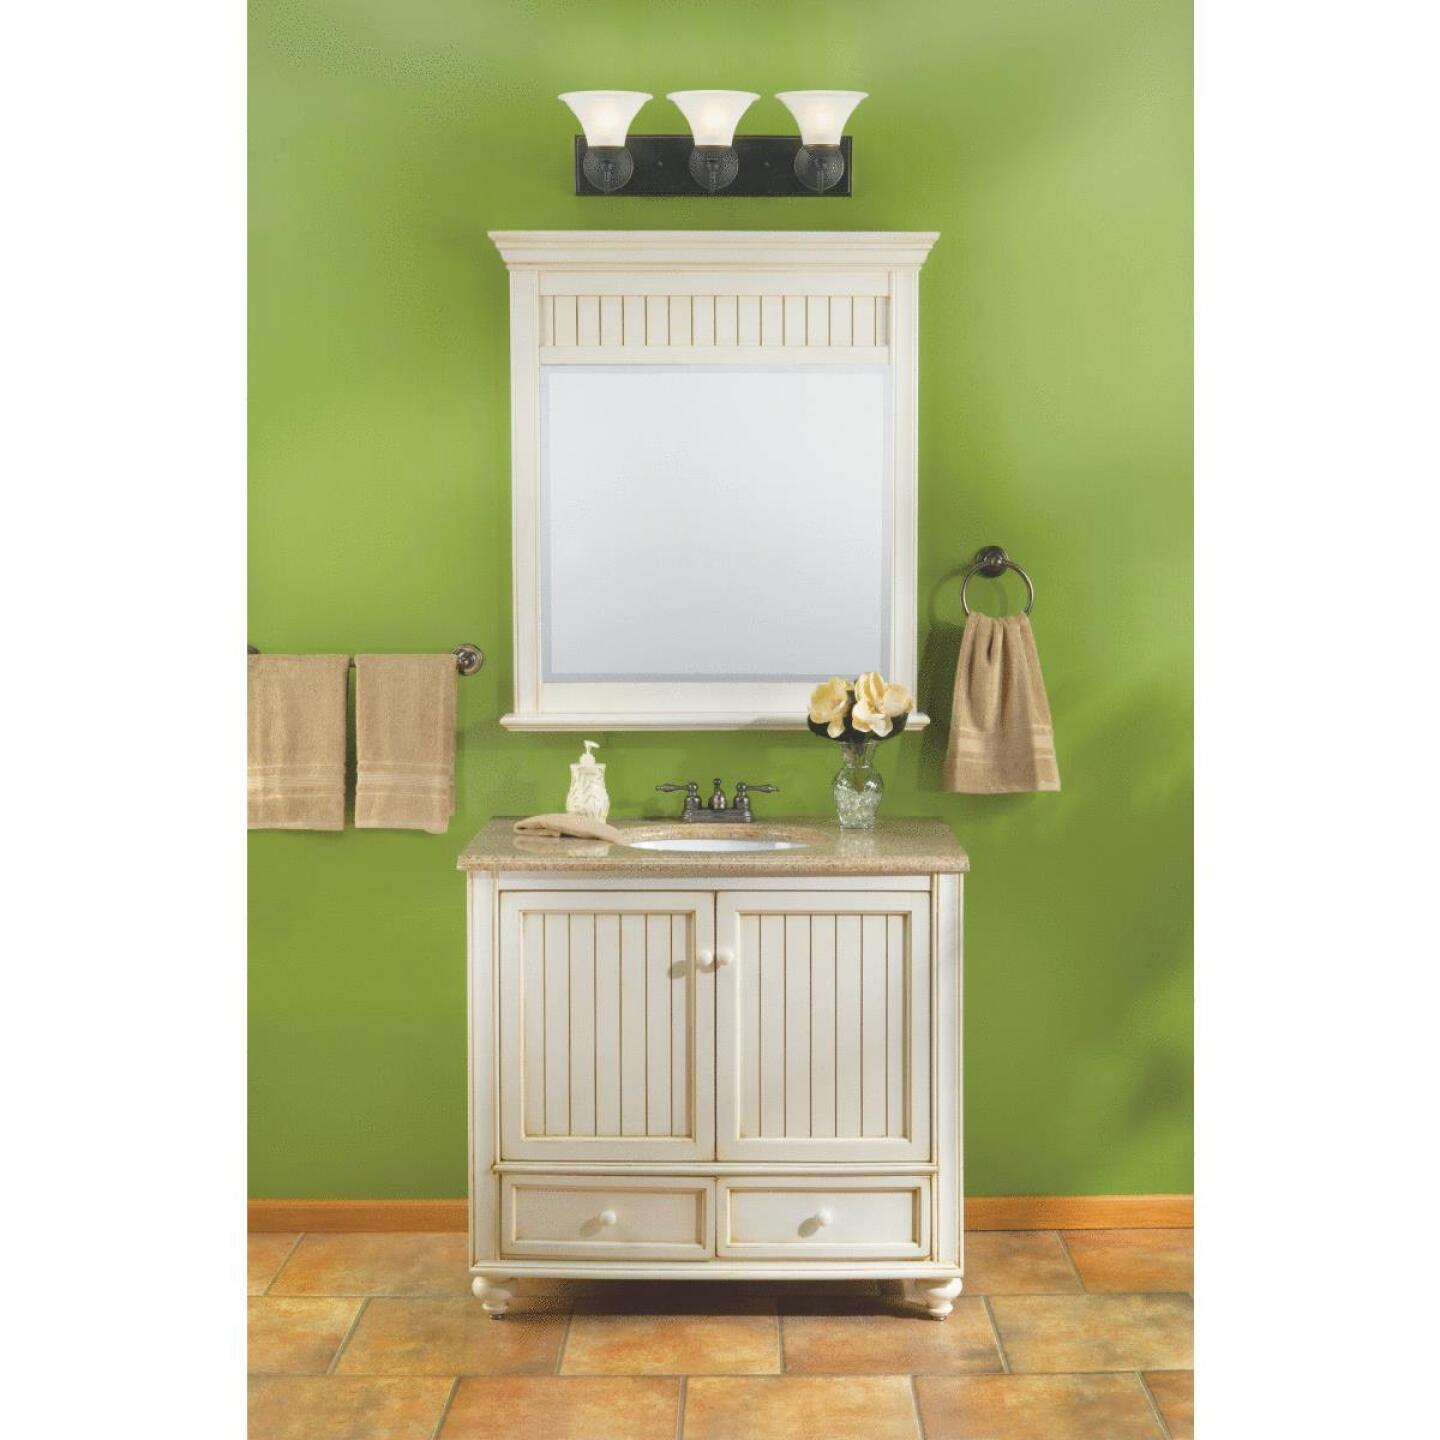 Sunny Wood Bristol Beach White 36 In. W x 34 In. H x 21 In. D Vanity Base, 2 Door/2 Drawer Image 8